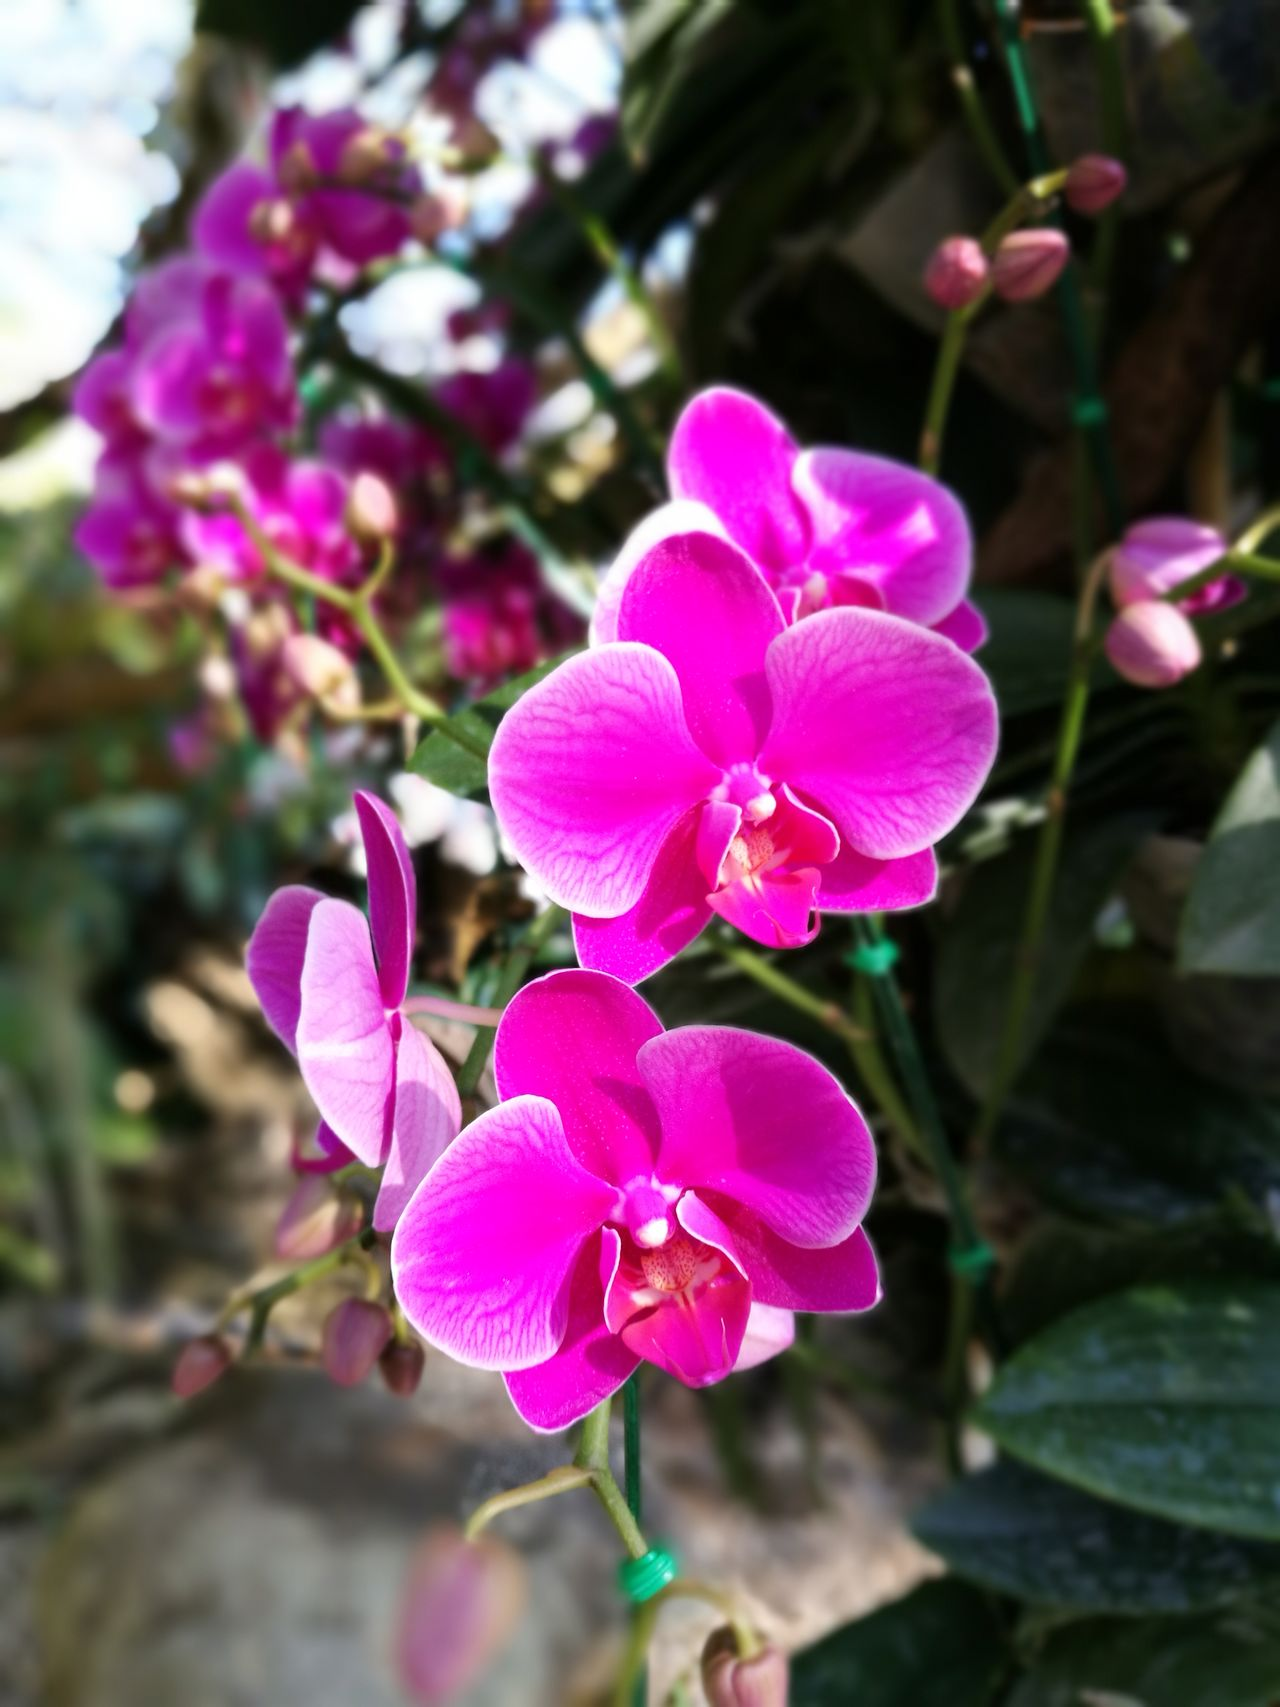 Purple exotic orchids Flower Nature Growth Orchid Beauty In Nature Pink Color Purple Plant Petal Freshness Outdoors Day Exotic Exotic Flowers Garden Morning Light Thailand Yellow Focus On Foreground Plant Close-up Flower Head